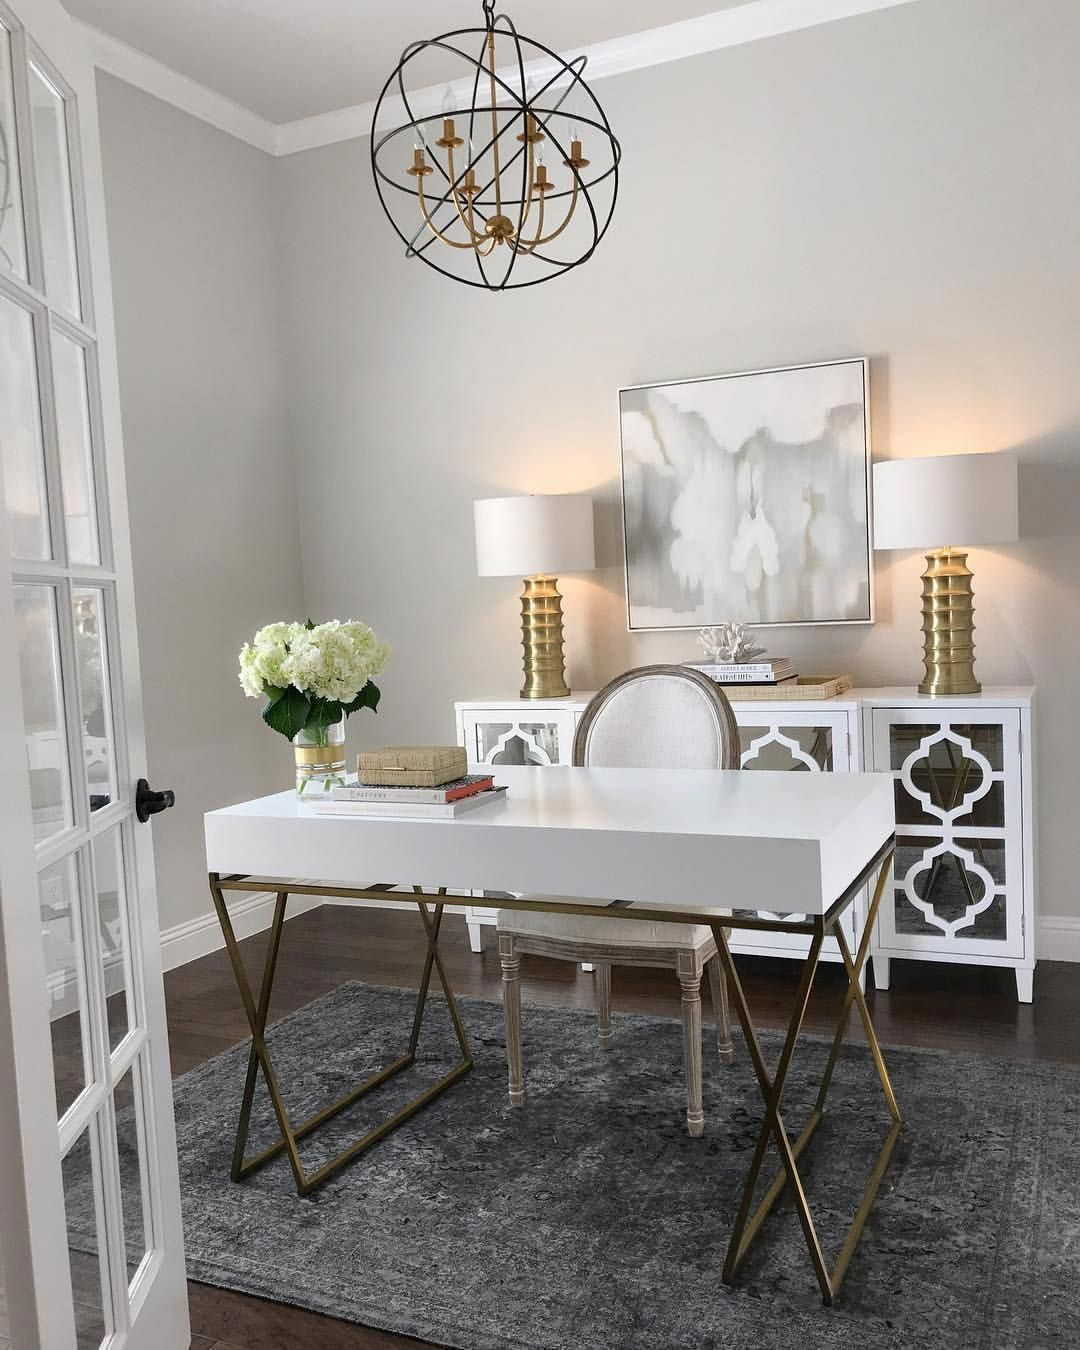 Home Office Ideas. Make The Most Of Your Extra Space